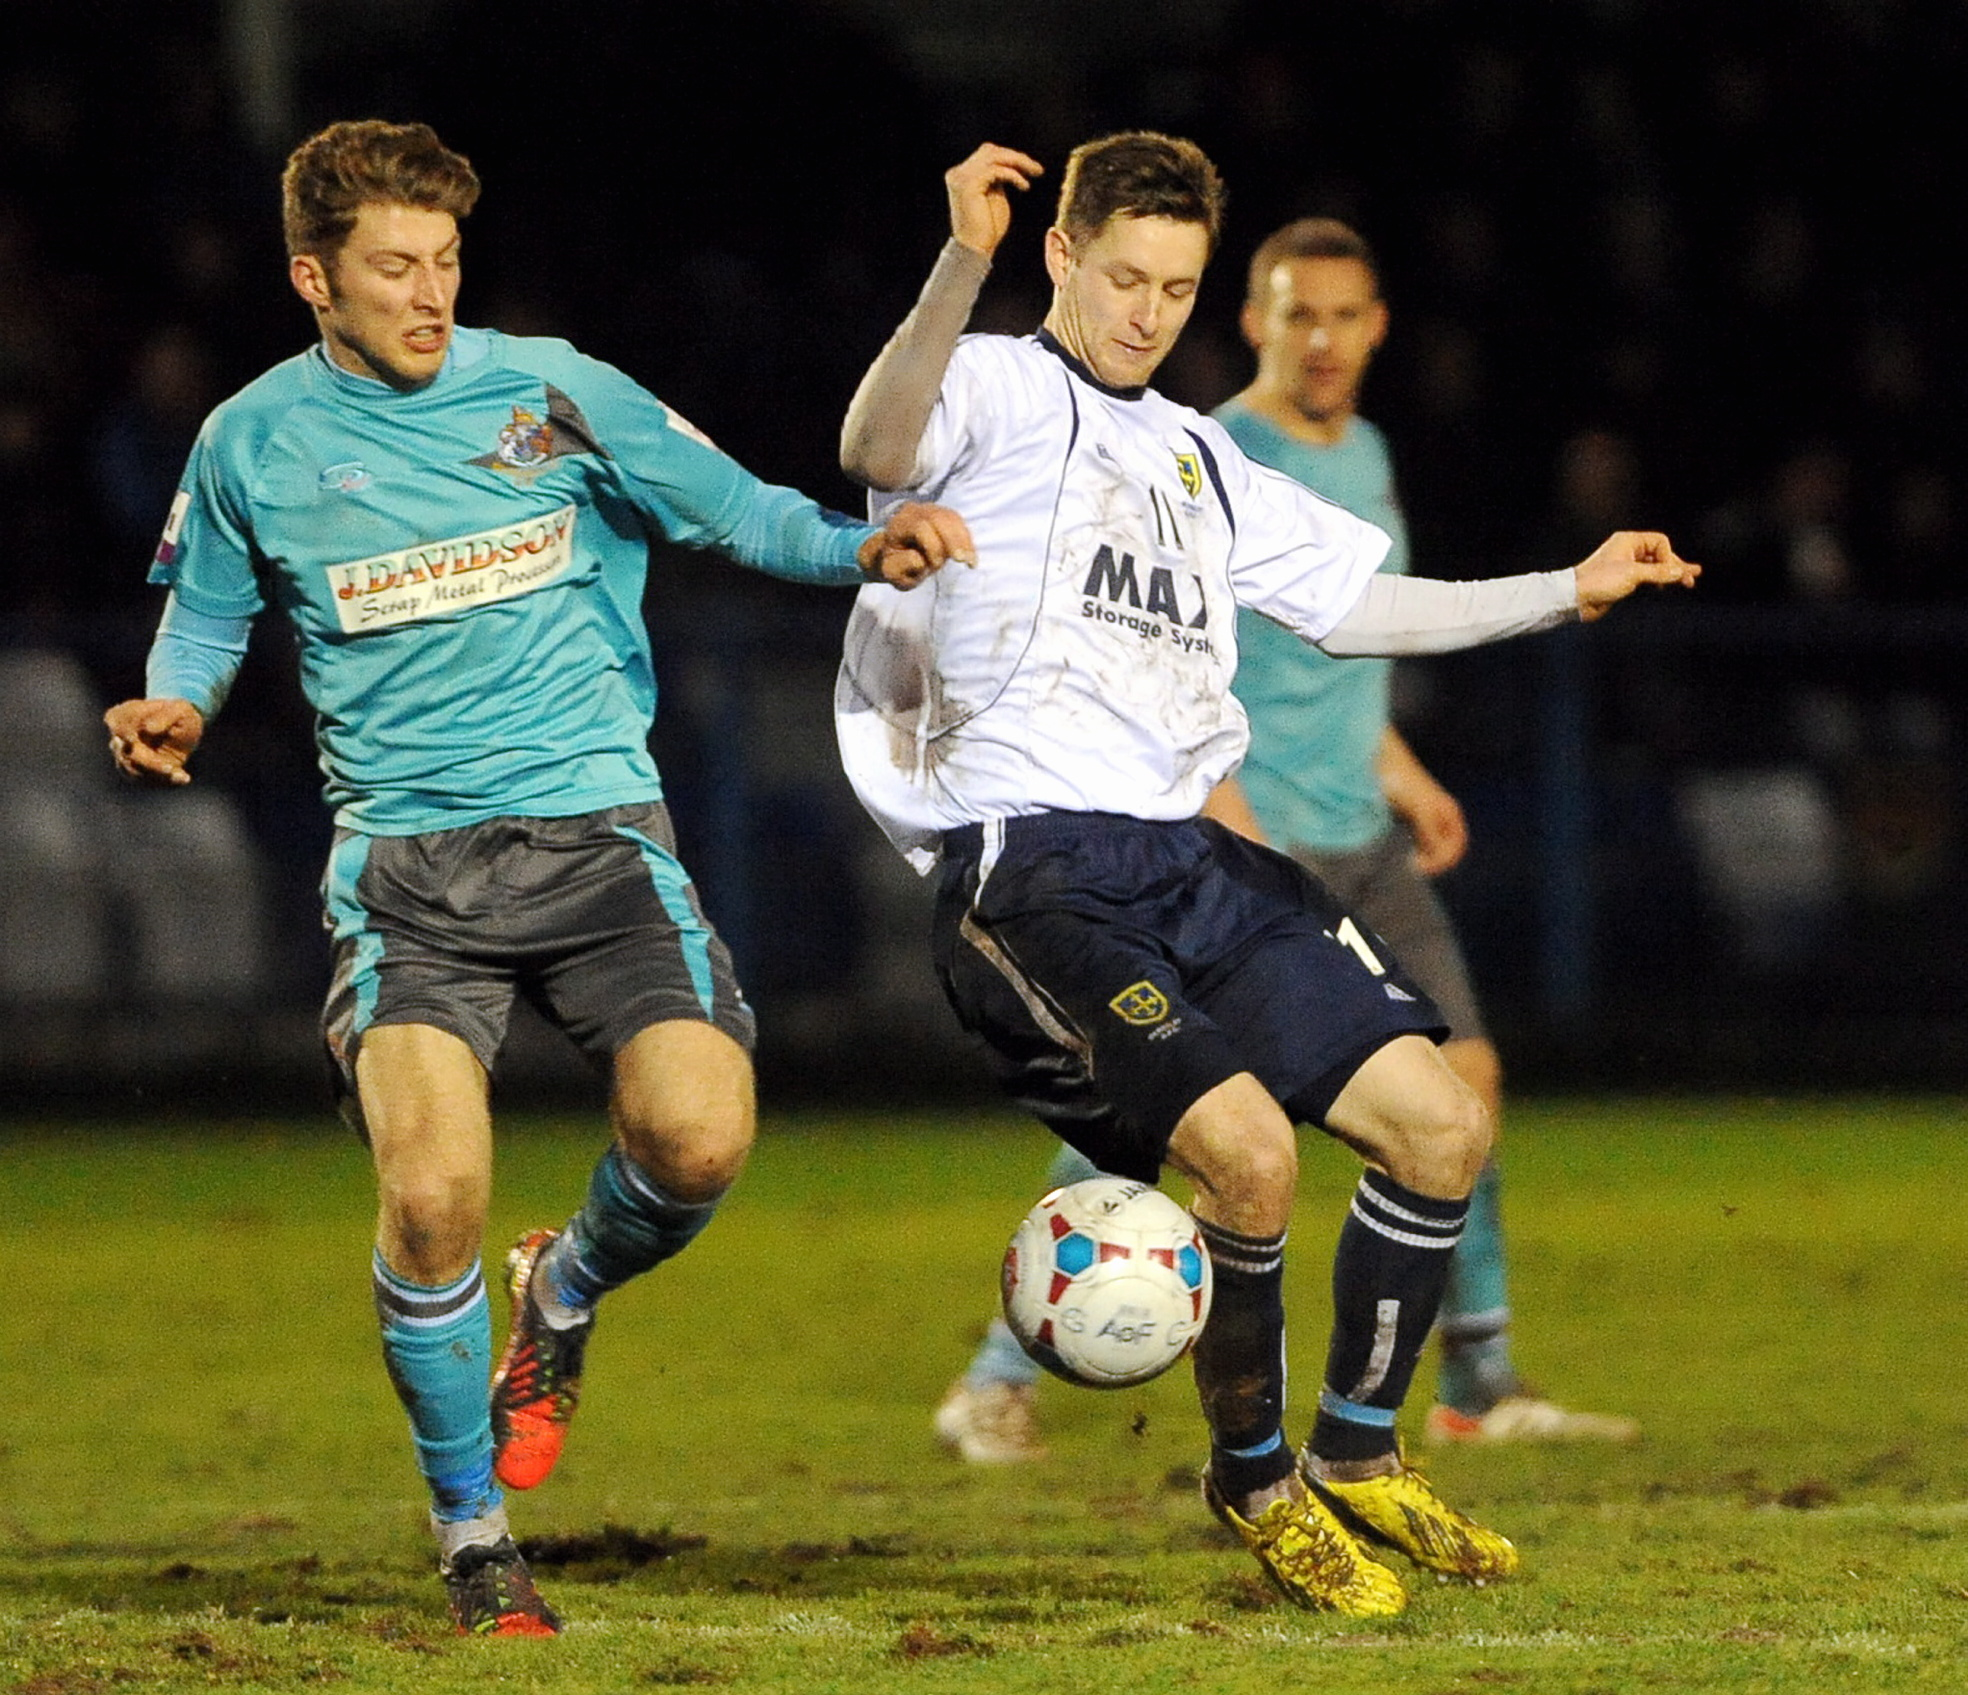 Gavin Rothery netted twice for Guiseley